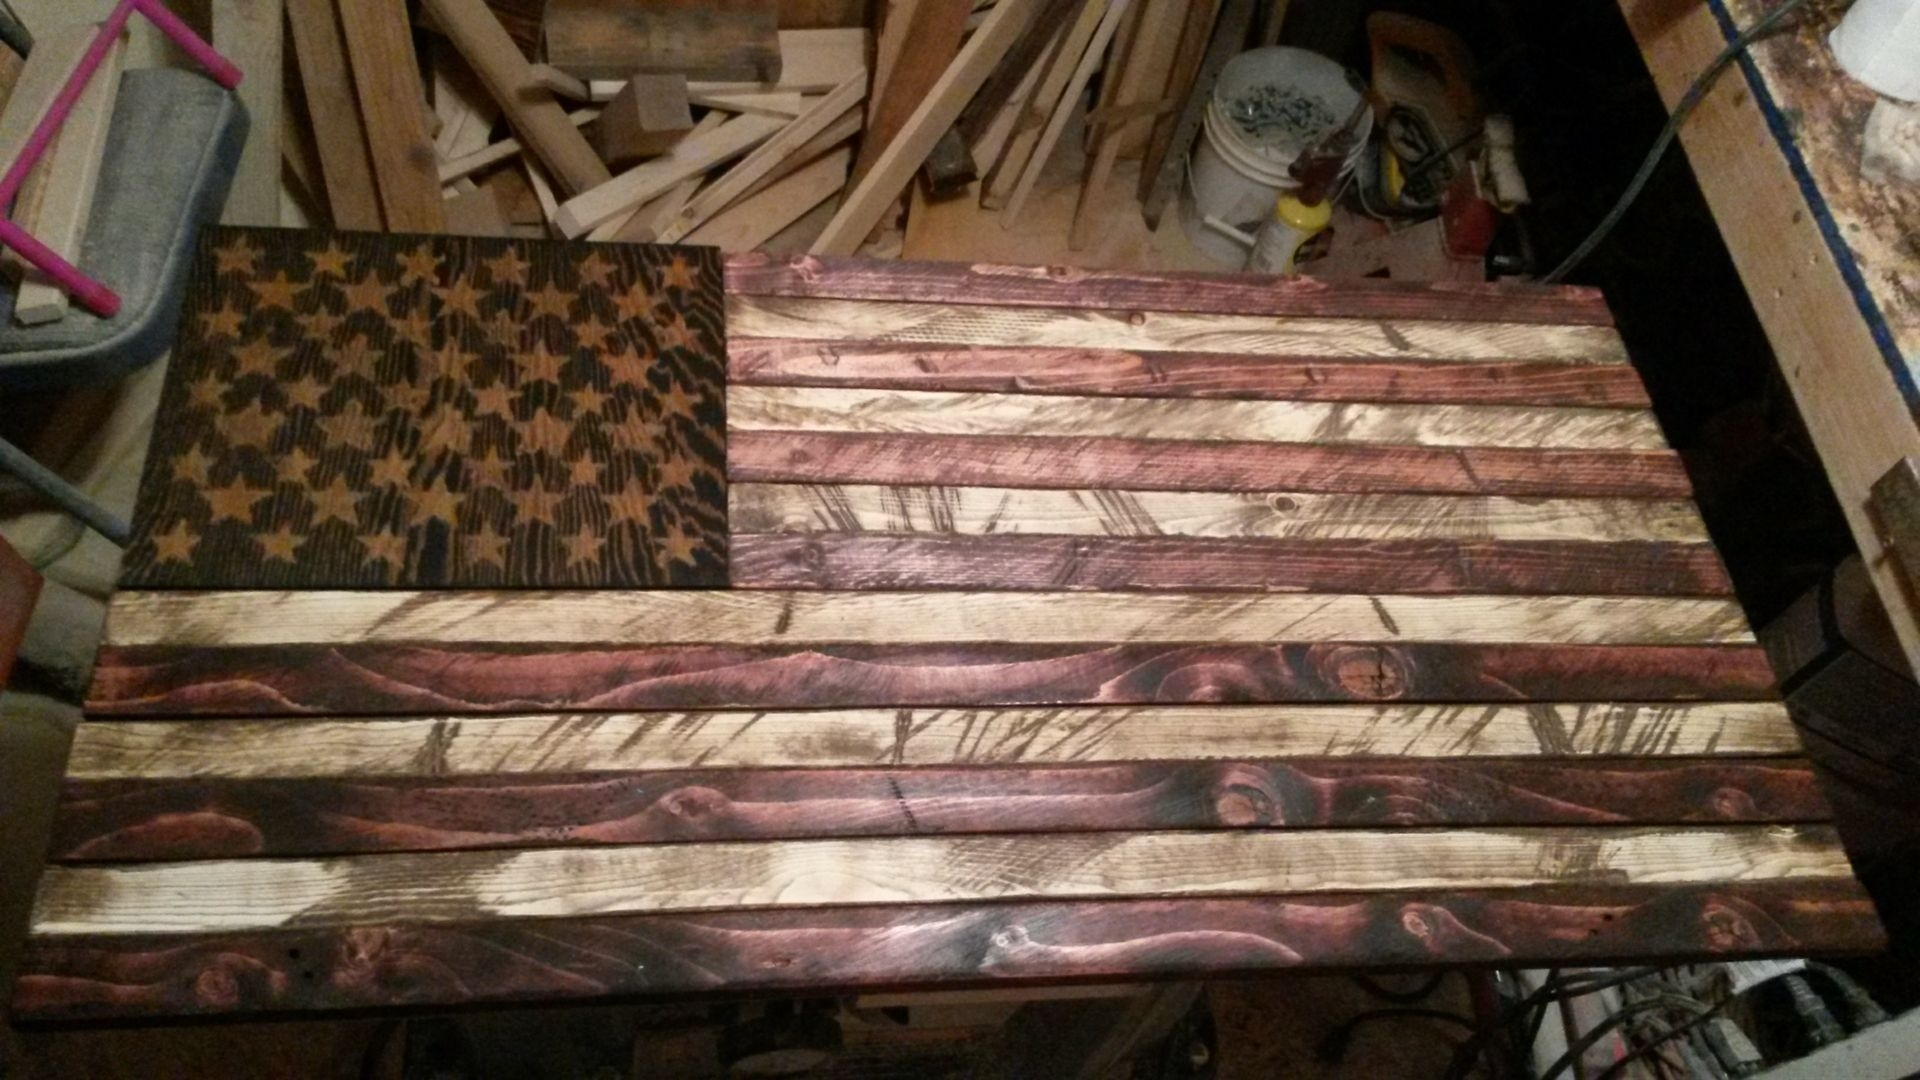 Buy A Handmade Rustic Distressed Wood American Flag, Made To Order Regarding Current Rustic American Flag Wall Art (View 5 of 20)